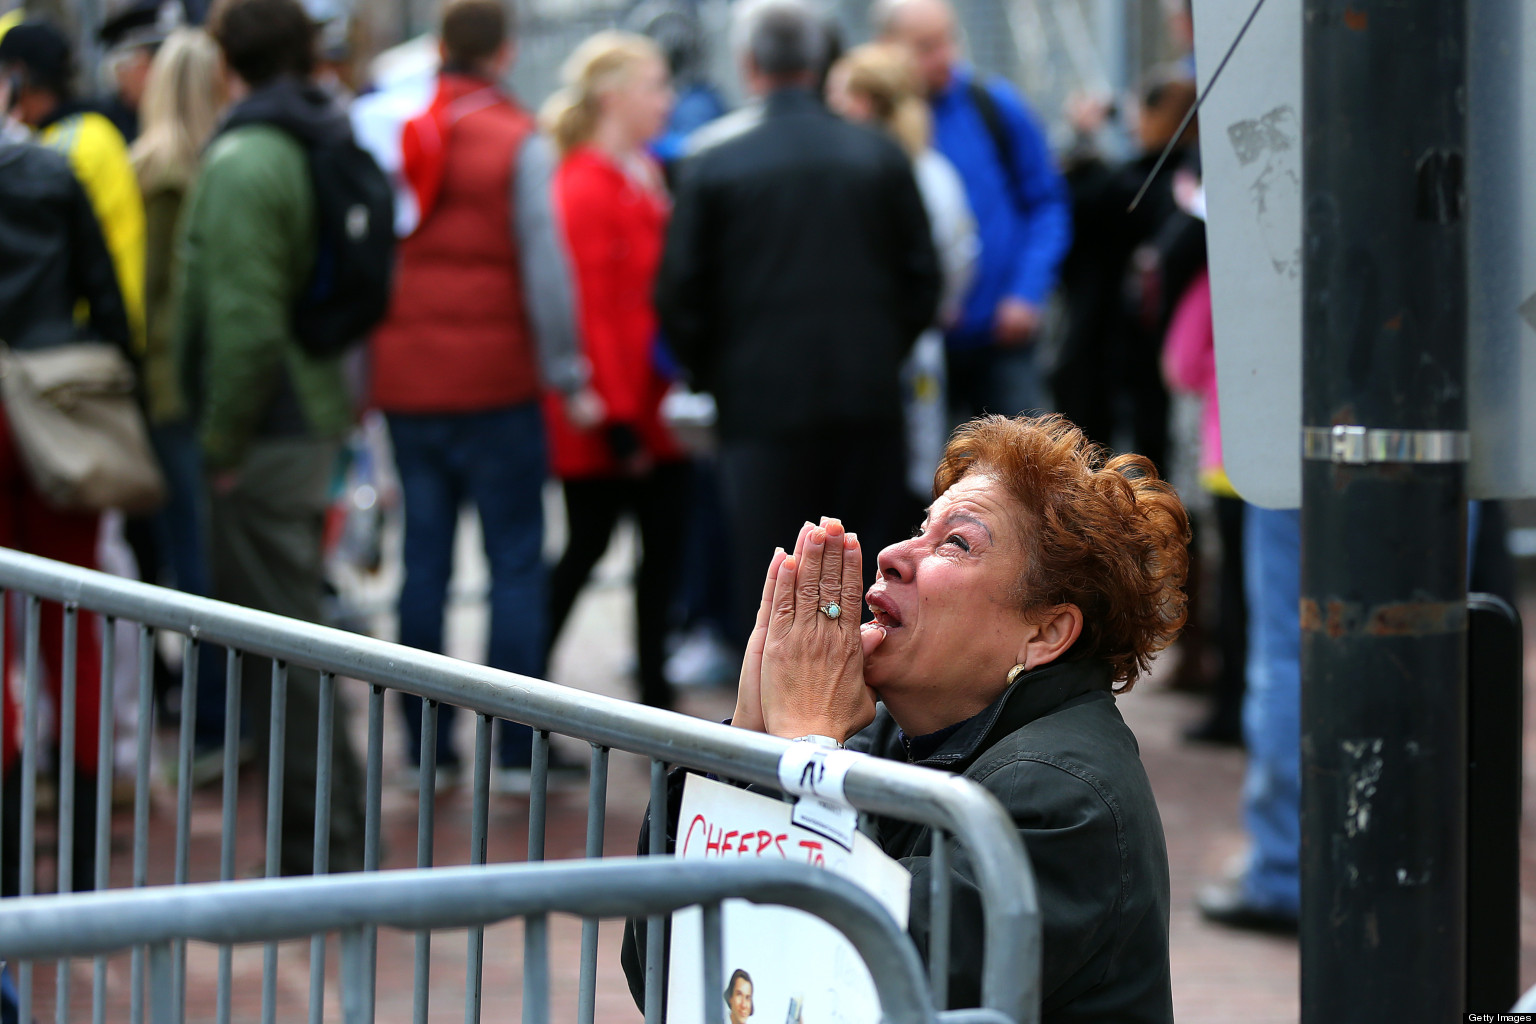 Post-Traumatic Stress Becomes Concern After Boston Attack